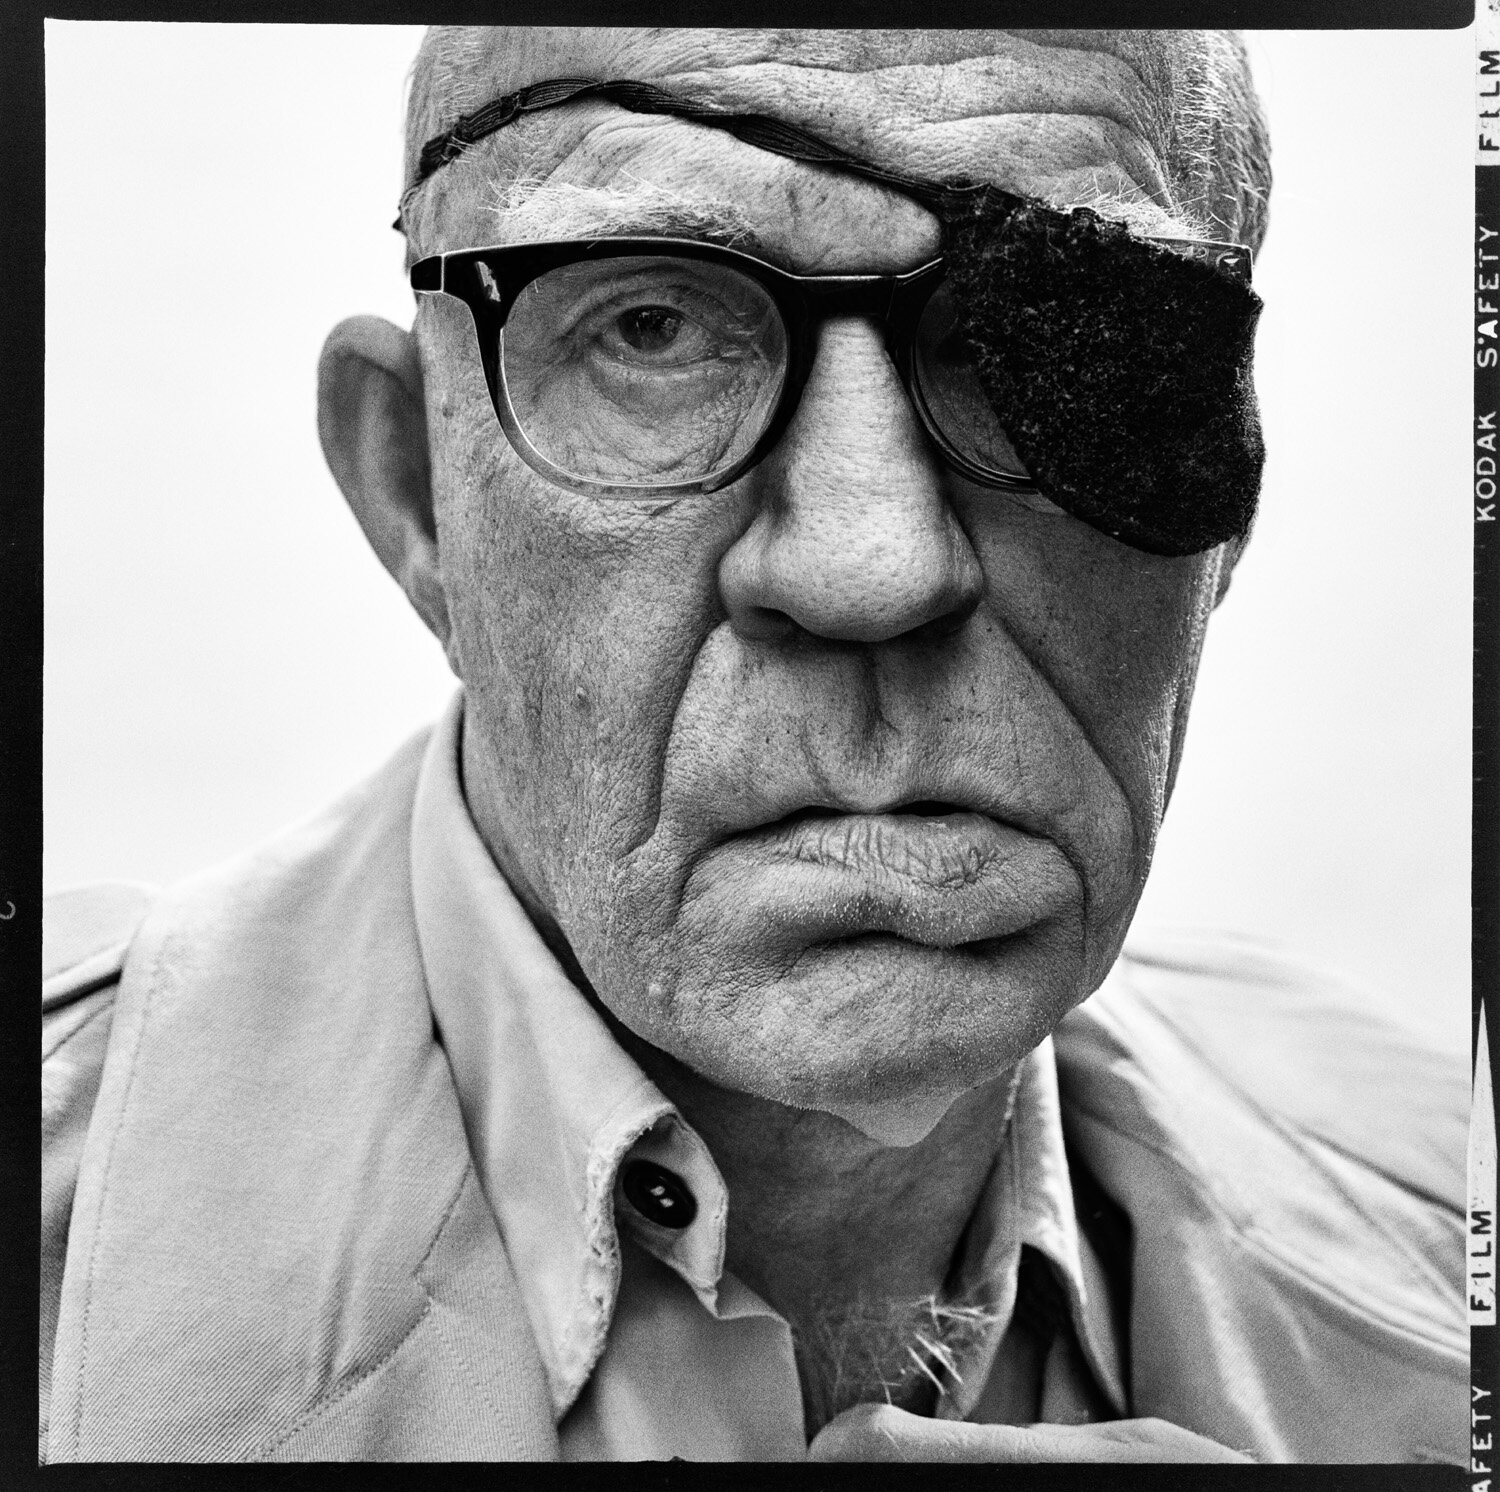 Richard Avedon _ John Ford, Director, Bel Air, California (April 11, 1972), 2017.jpg